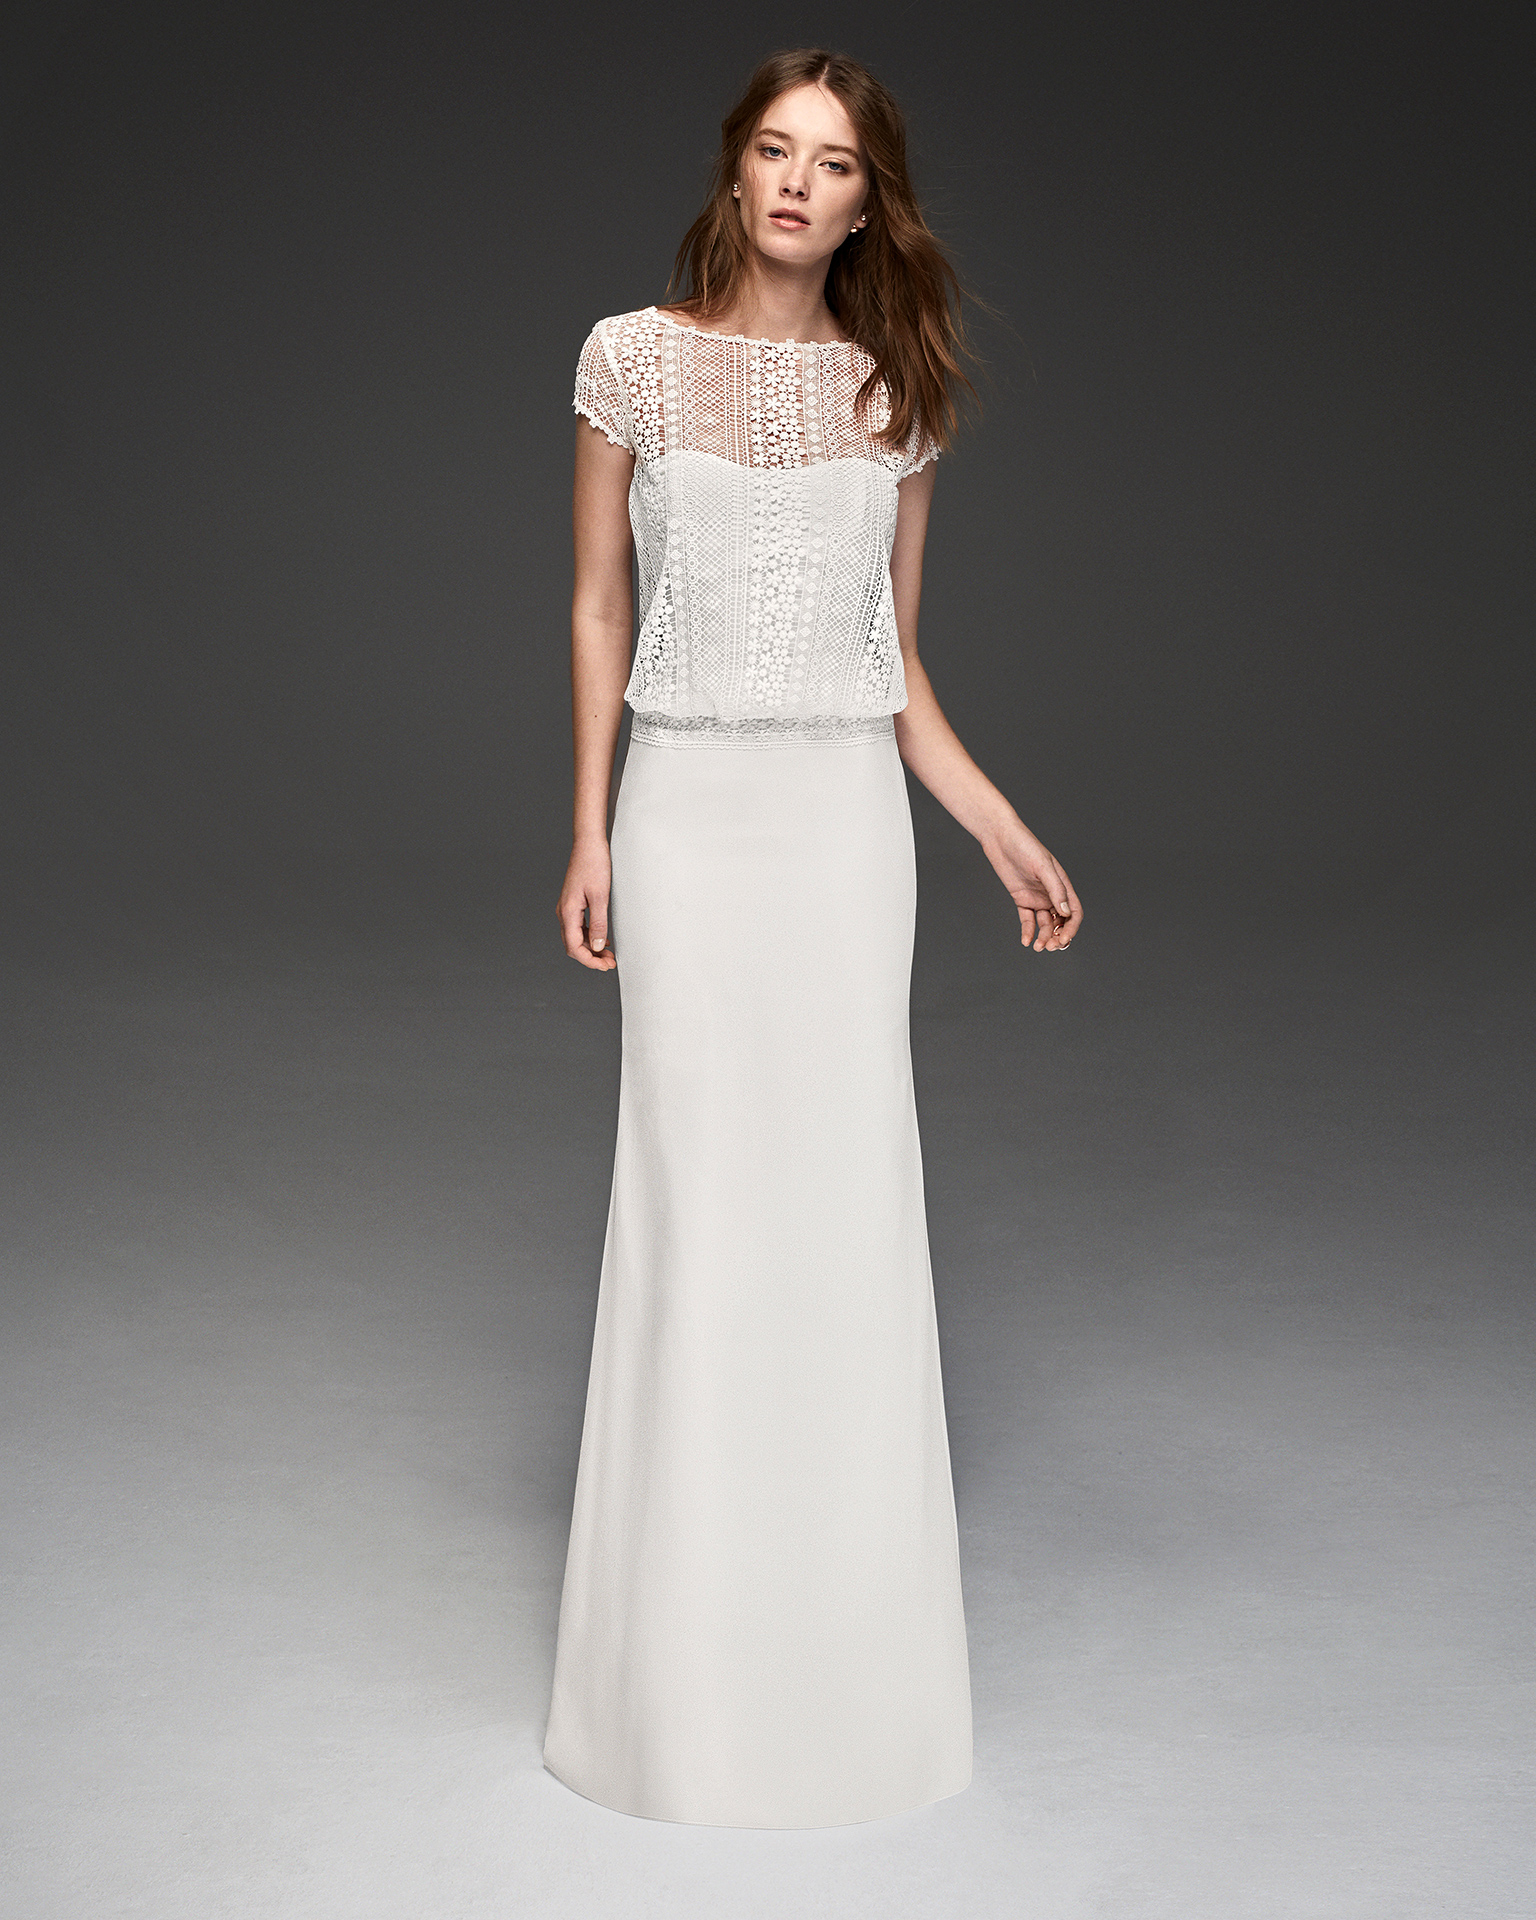 Boho-style crepe Georgette and guipure lace wedding dress with short sleeves.